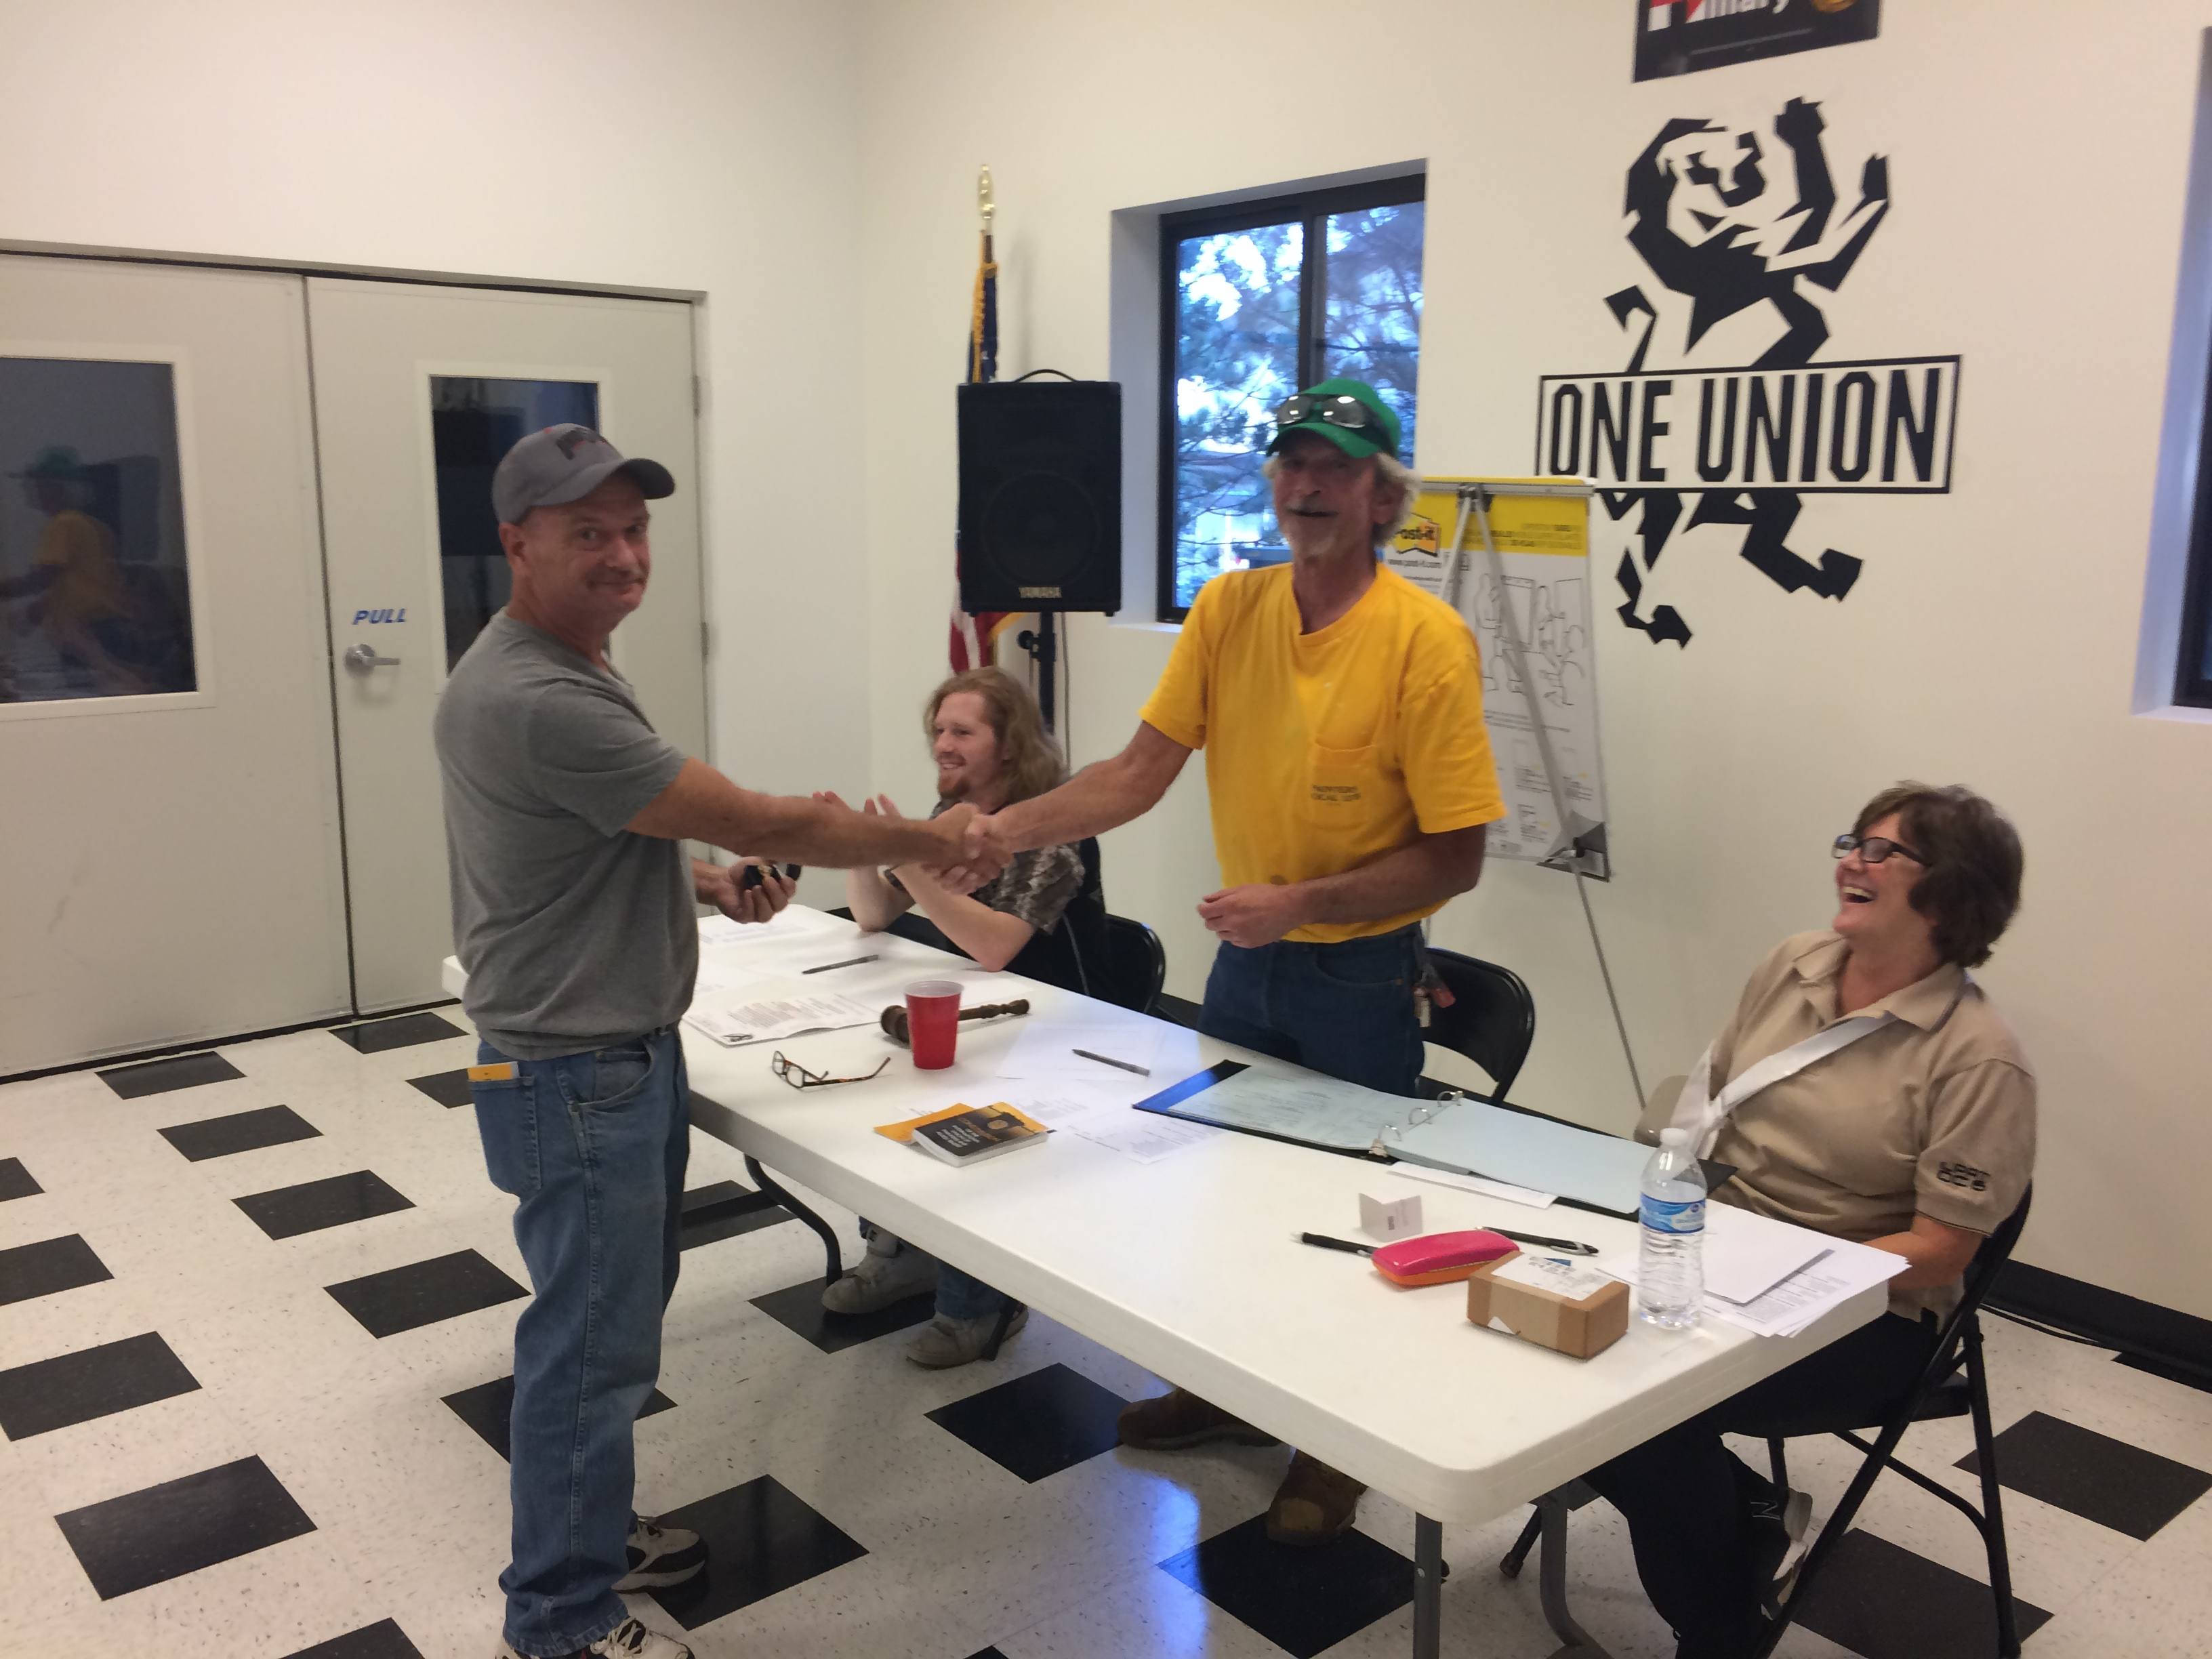 Dave Crisp receives his 35-year service ring at a LU 1275 meeting.